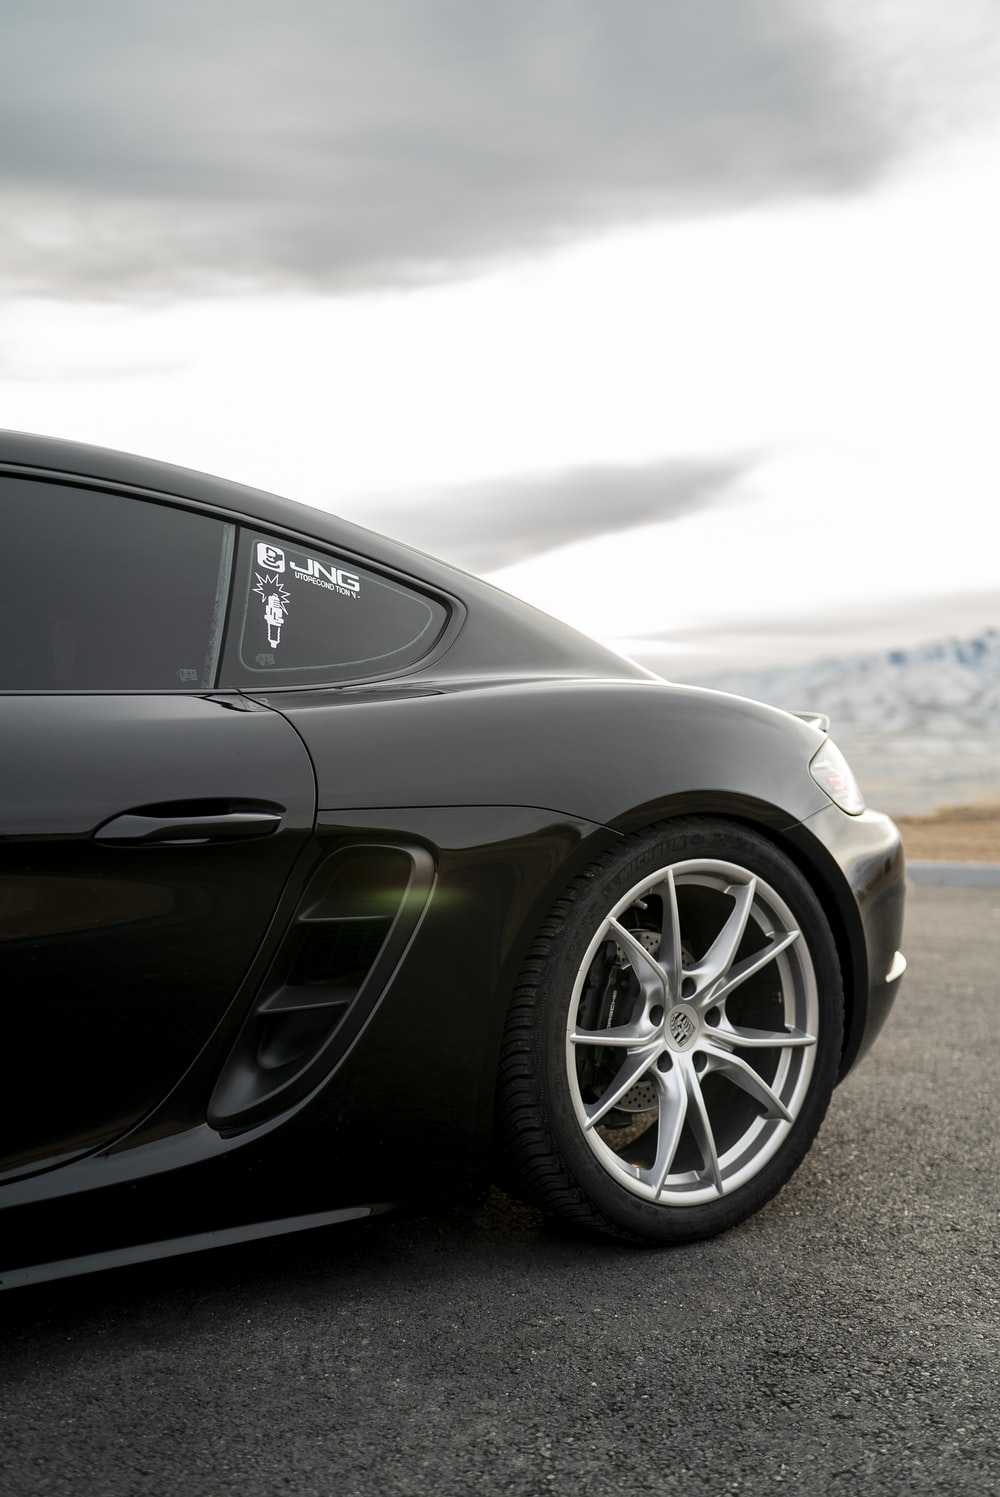 black coupe on road during daytime